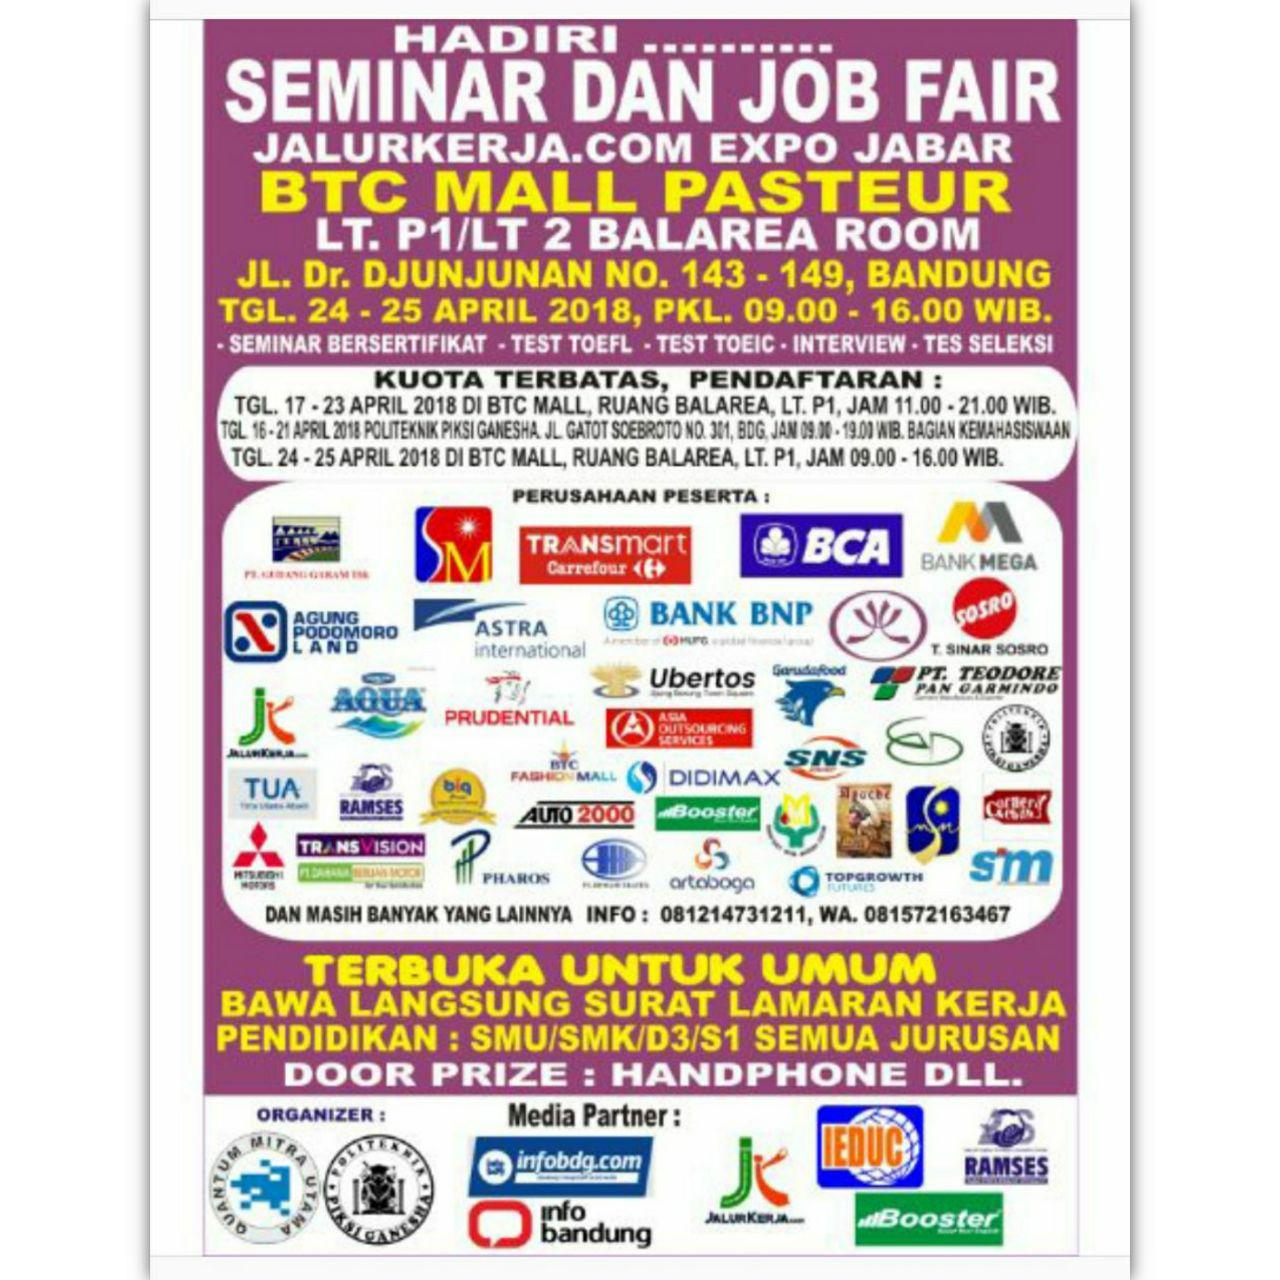 Seminar Dan Job Fair BTC Mall Pasteur Bandung 24 - 25 April 2018